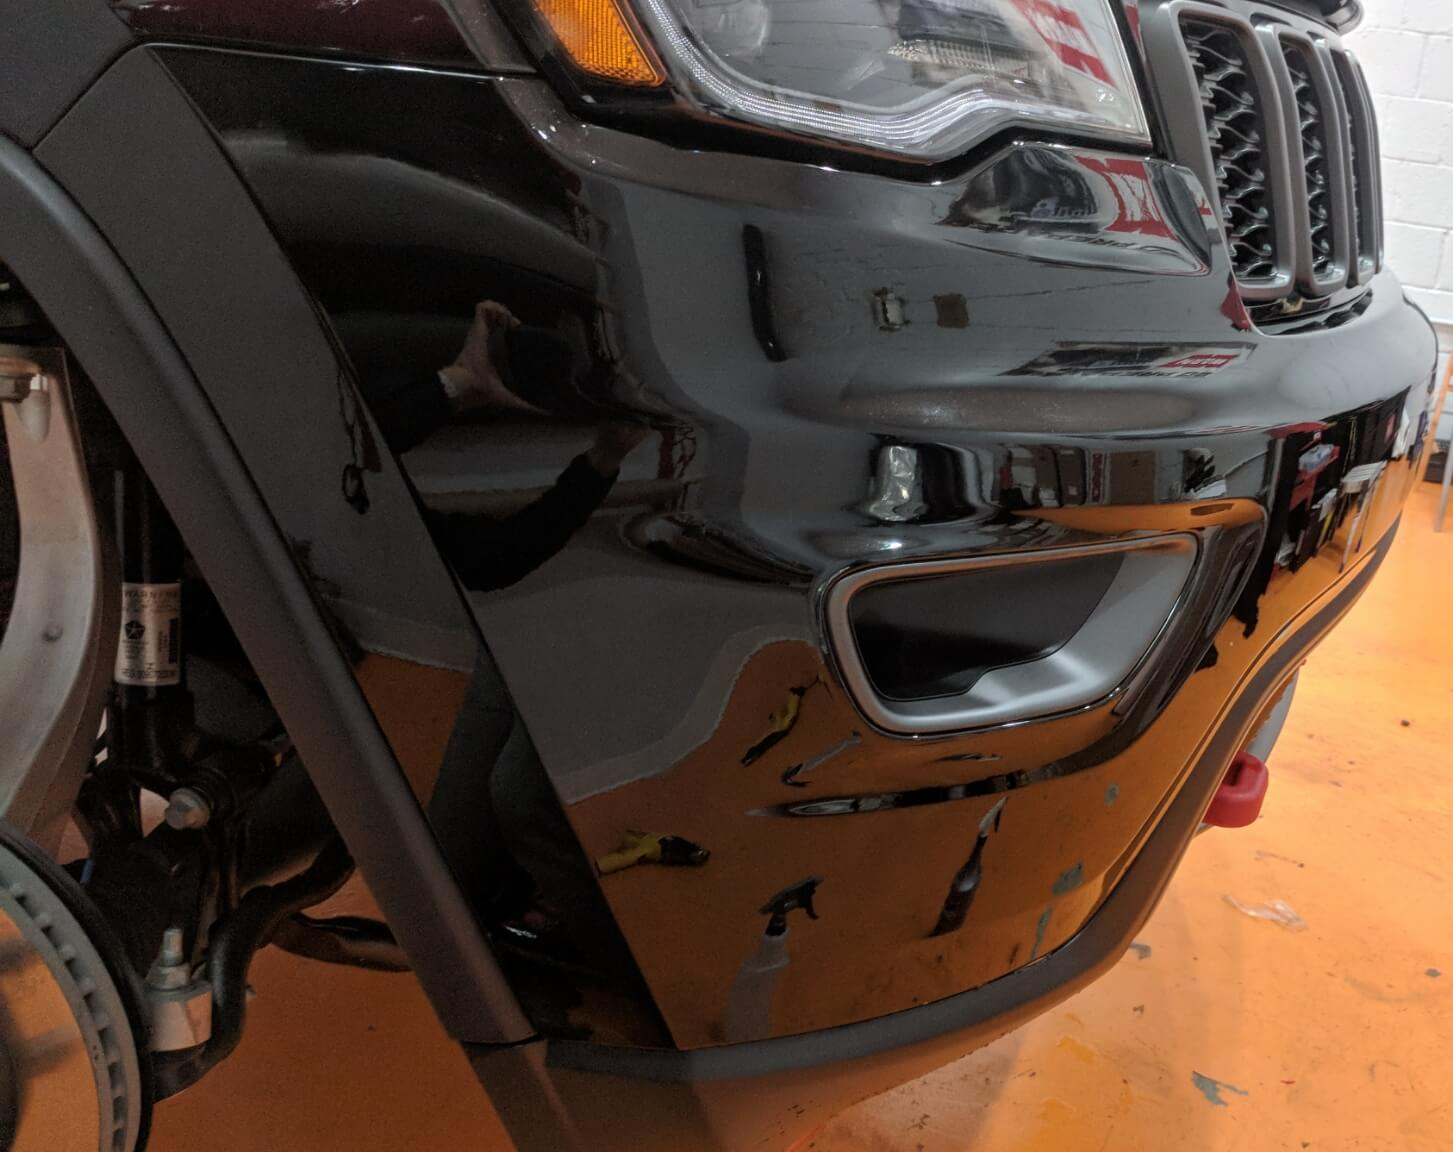 Jeep Grand Cherokee received complete front bumper coverage of Xpel Ultimate paint protection film